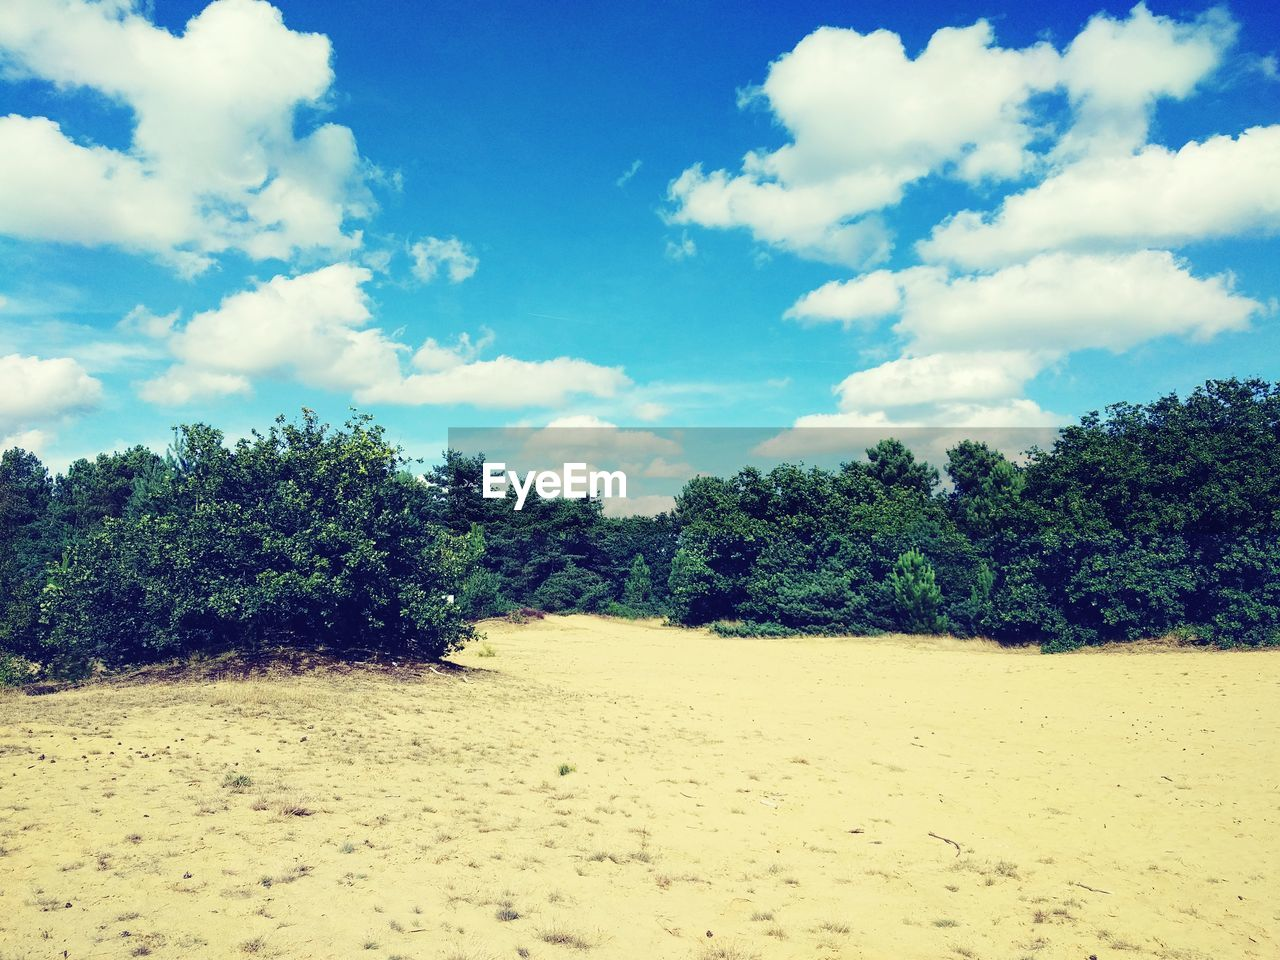 tree, cloud - sky, sky, nature, scenics, tranquil scene, tranquility, beauty in nature, no people, landscape, day, sand, growth, outdoors